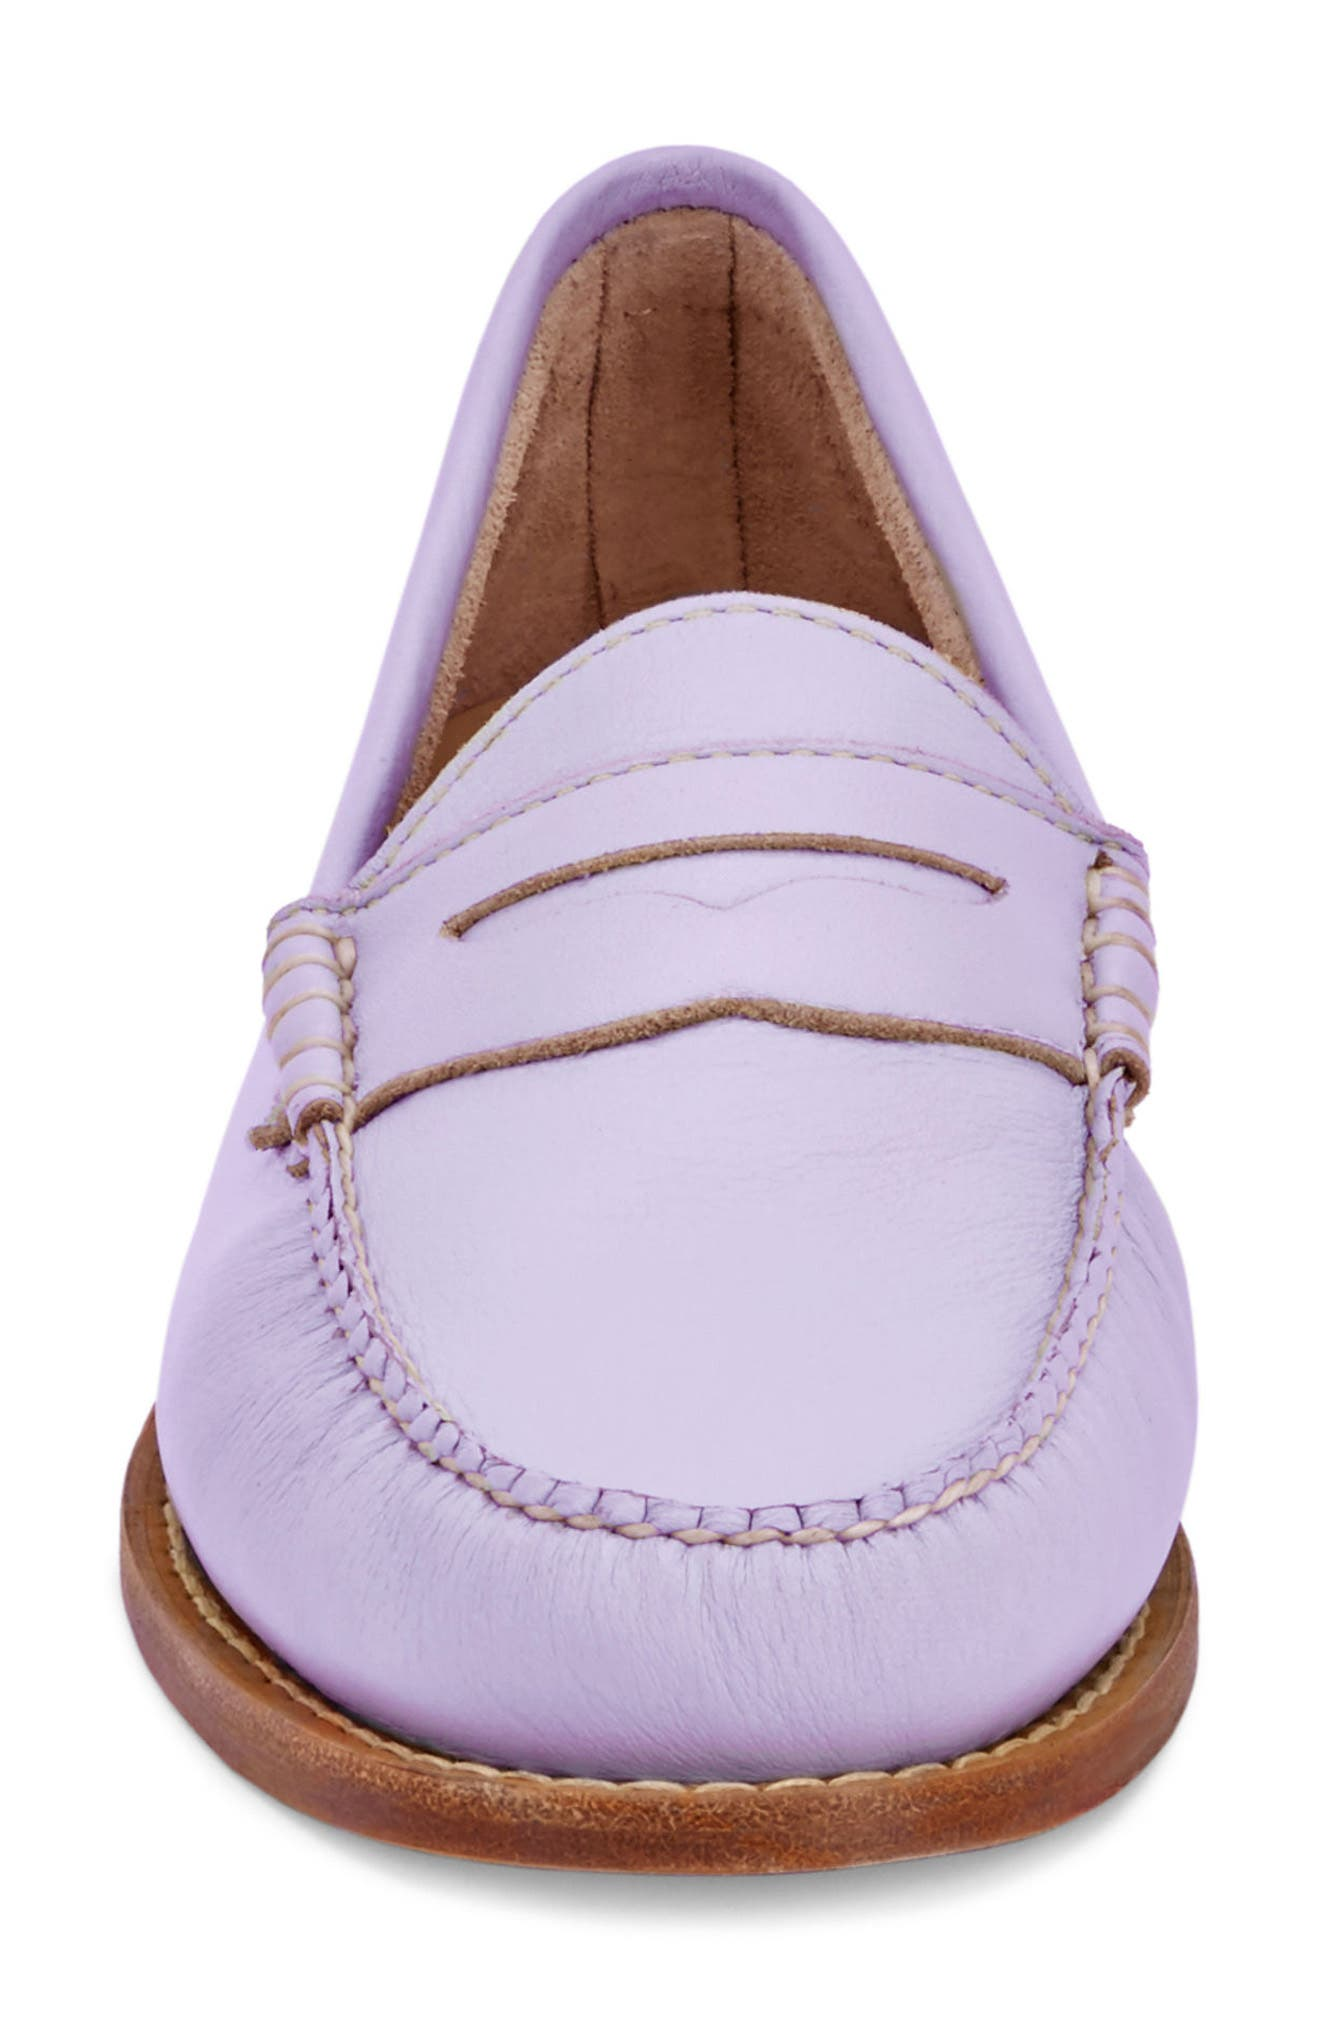 'Whitney' Loafer,                             Alternate thumbnail 4, color,                             Lilac Leather